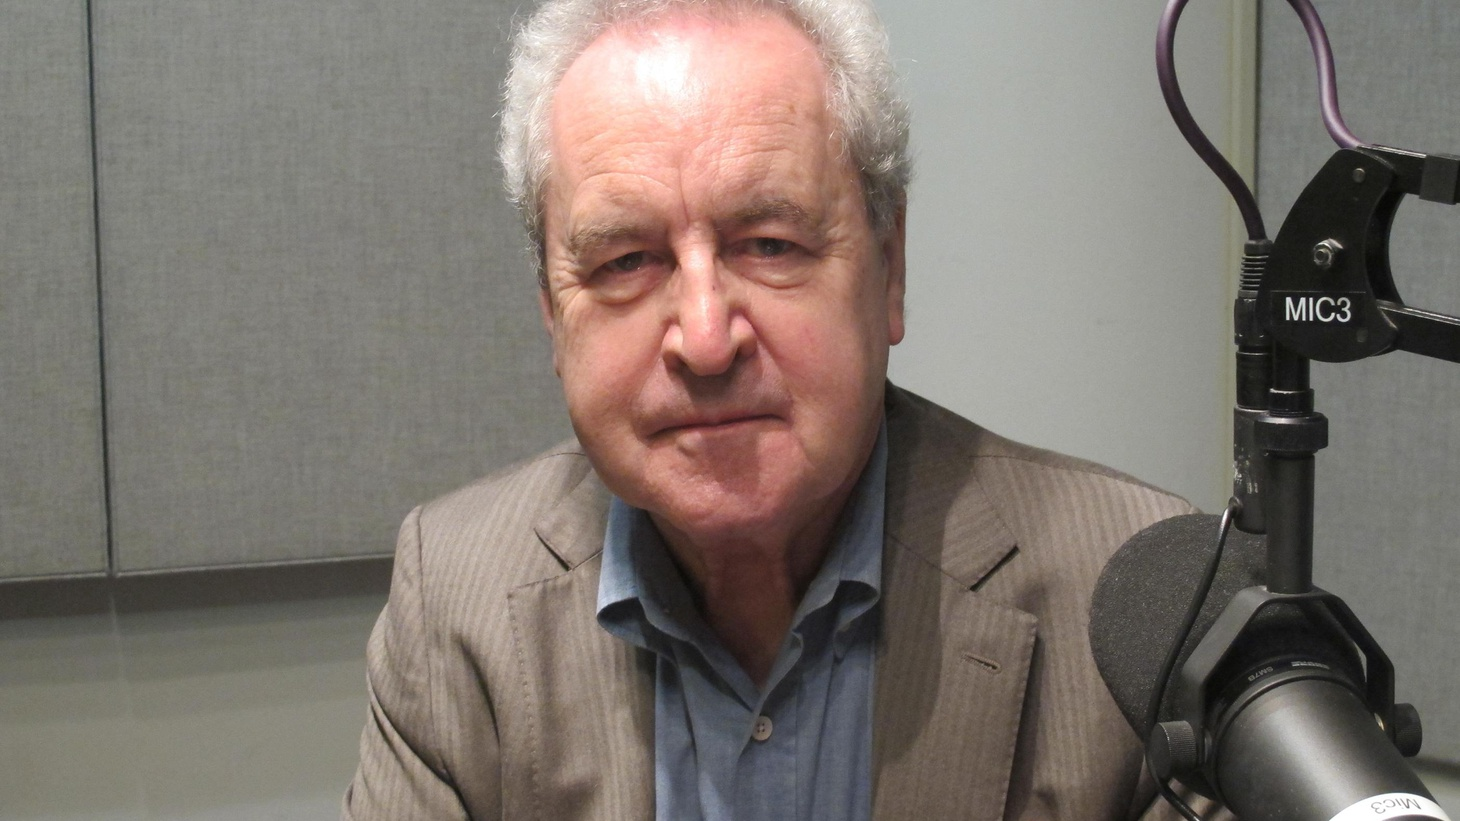 Irish author John Banville has written a new novel under his crime-fiction pseudonym, Benjamin Black, and in the guise of Raymond Chandler.